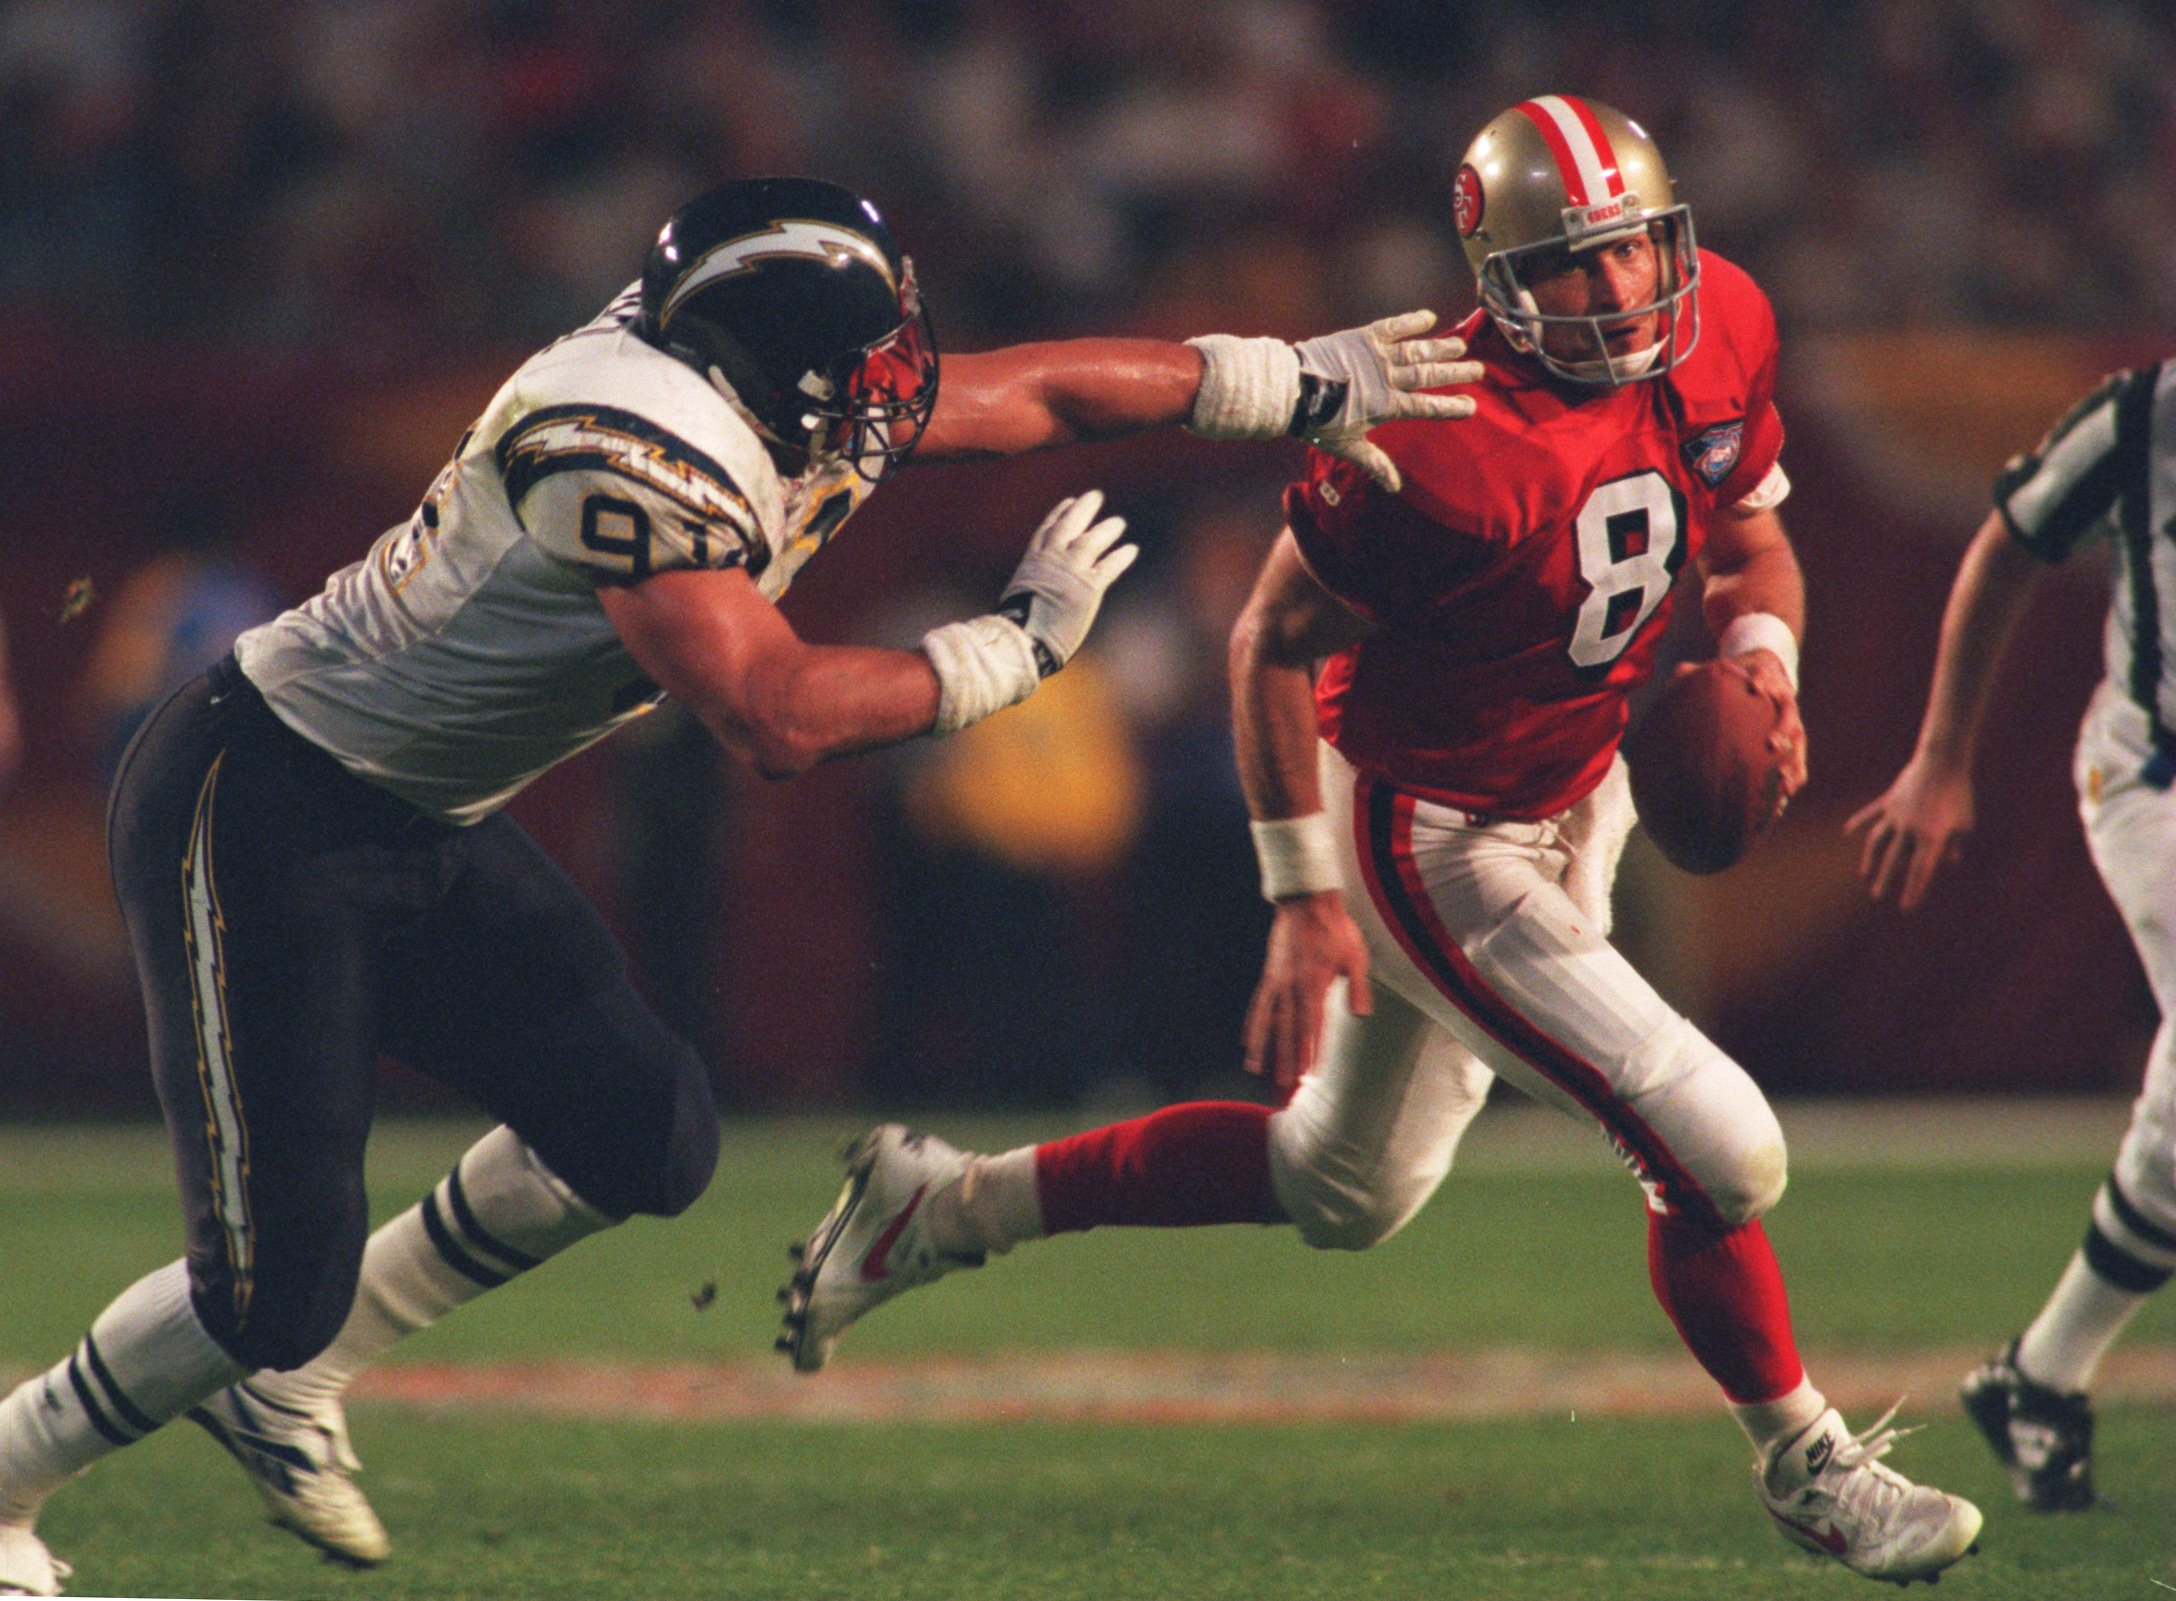 29 Jan 1995: SAN FRANCISCO QUARTERBACK STEVE YOUNG AVOIDS THE OUTSTRETCHED ARMS OF SAN DIEGO DEFENSIVE END LESLIE O'NEAL DURING THE FOURTH QUARTER OF THE SAN FRANCISCO 49ERS VERSUS SAN DIEGO CHARGERS IN SUPER BOWL XXIX AT JOE ROBBIE STADIUM IN MIAMI, FLOR